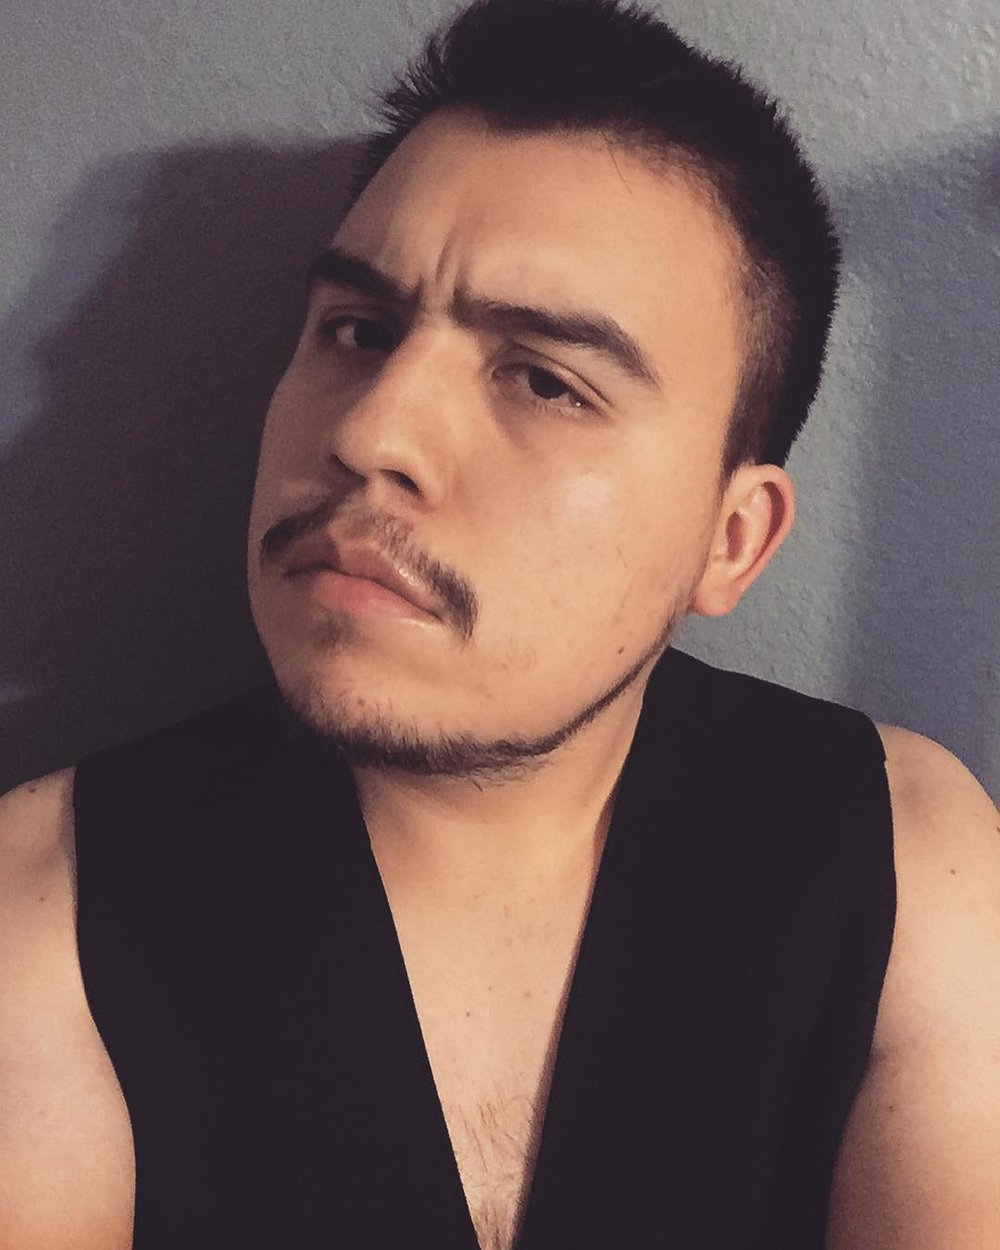 Aspects of my body, such as my perceived lack of body and facial hair at the time, became signifiers attributed to a hormonal imbalance in my asexual body and discouraged me from ever removing my shirt or wearing clothing that would expose my body.